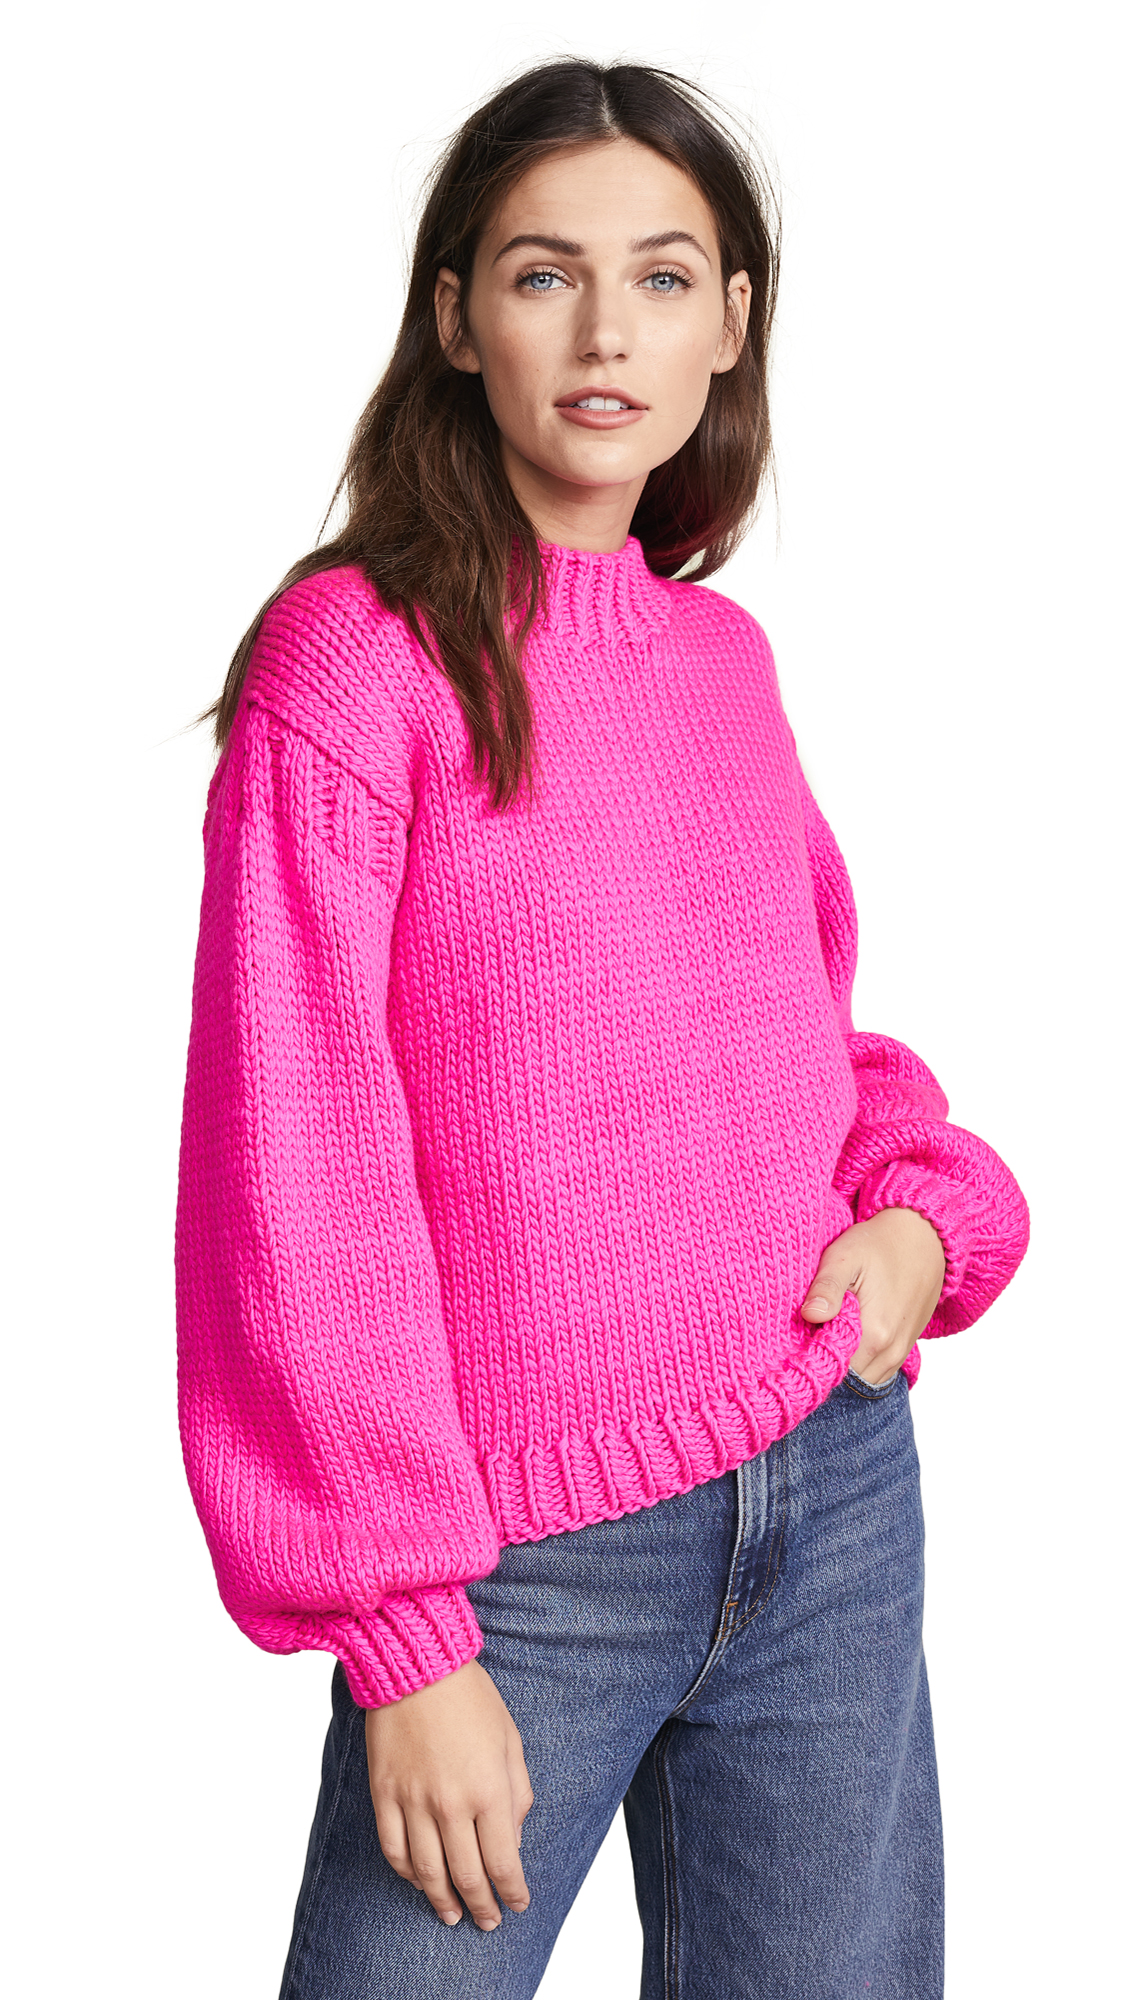 Ulla Johnson Rhea Pullover Sweater In Fuchsia